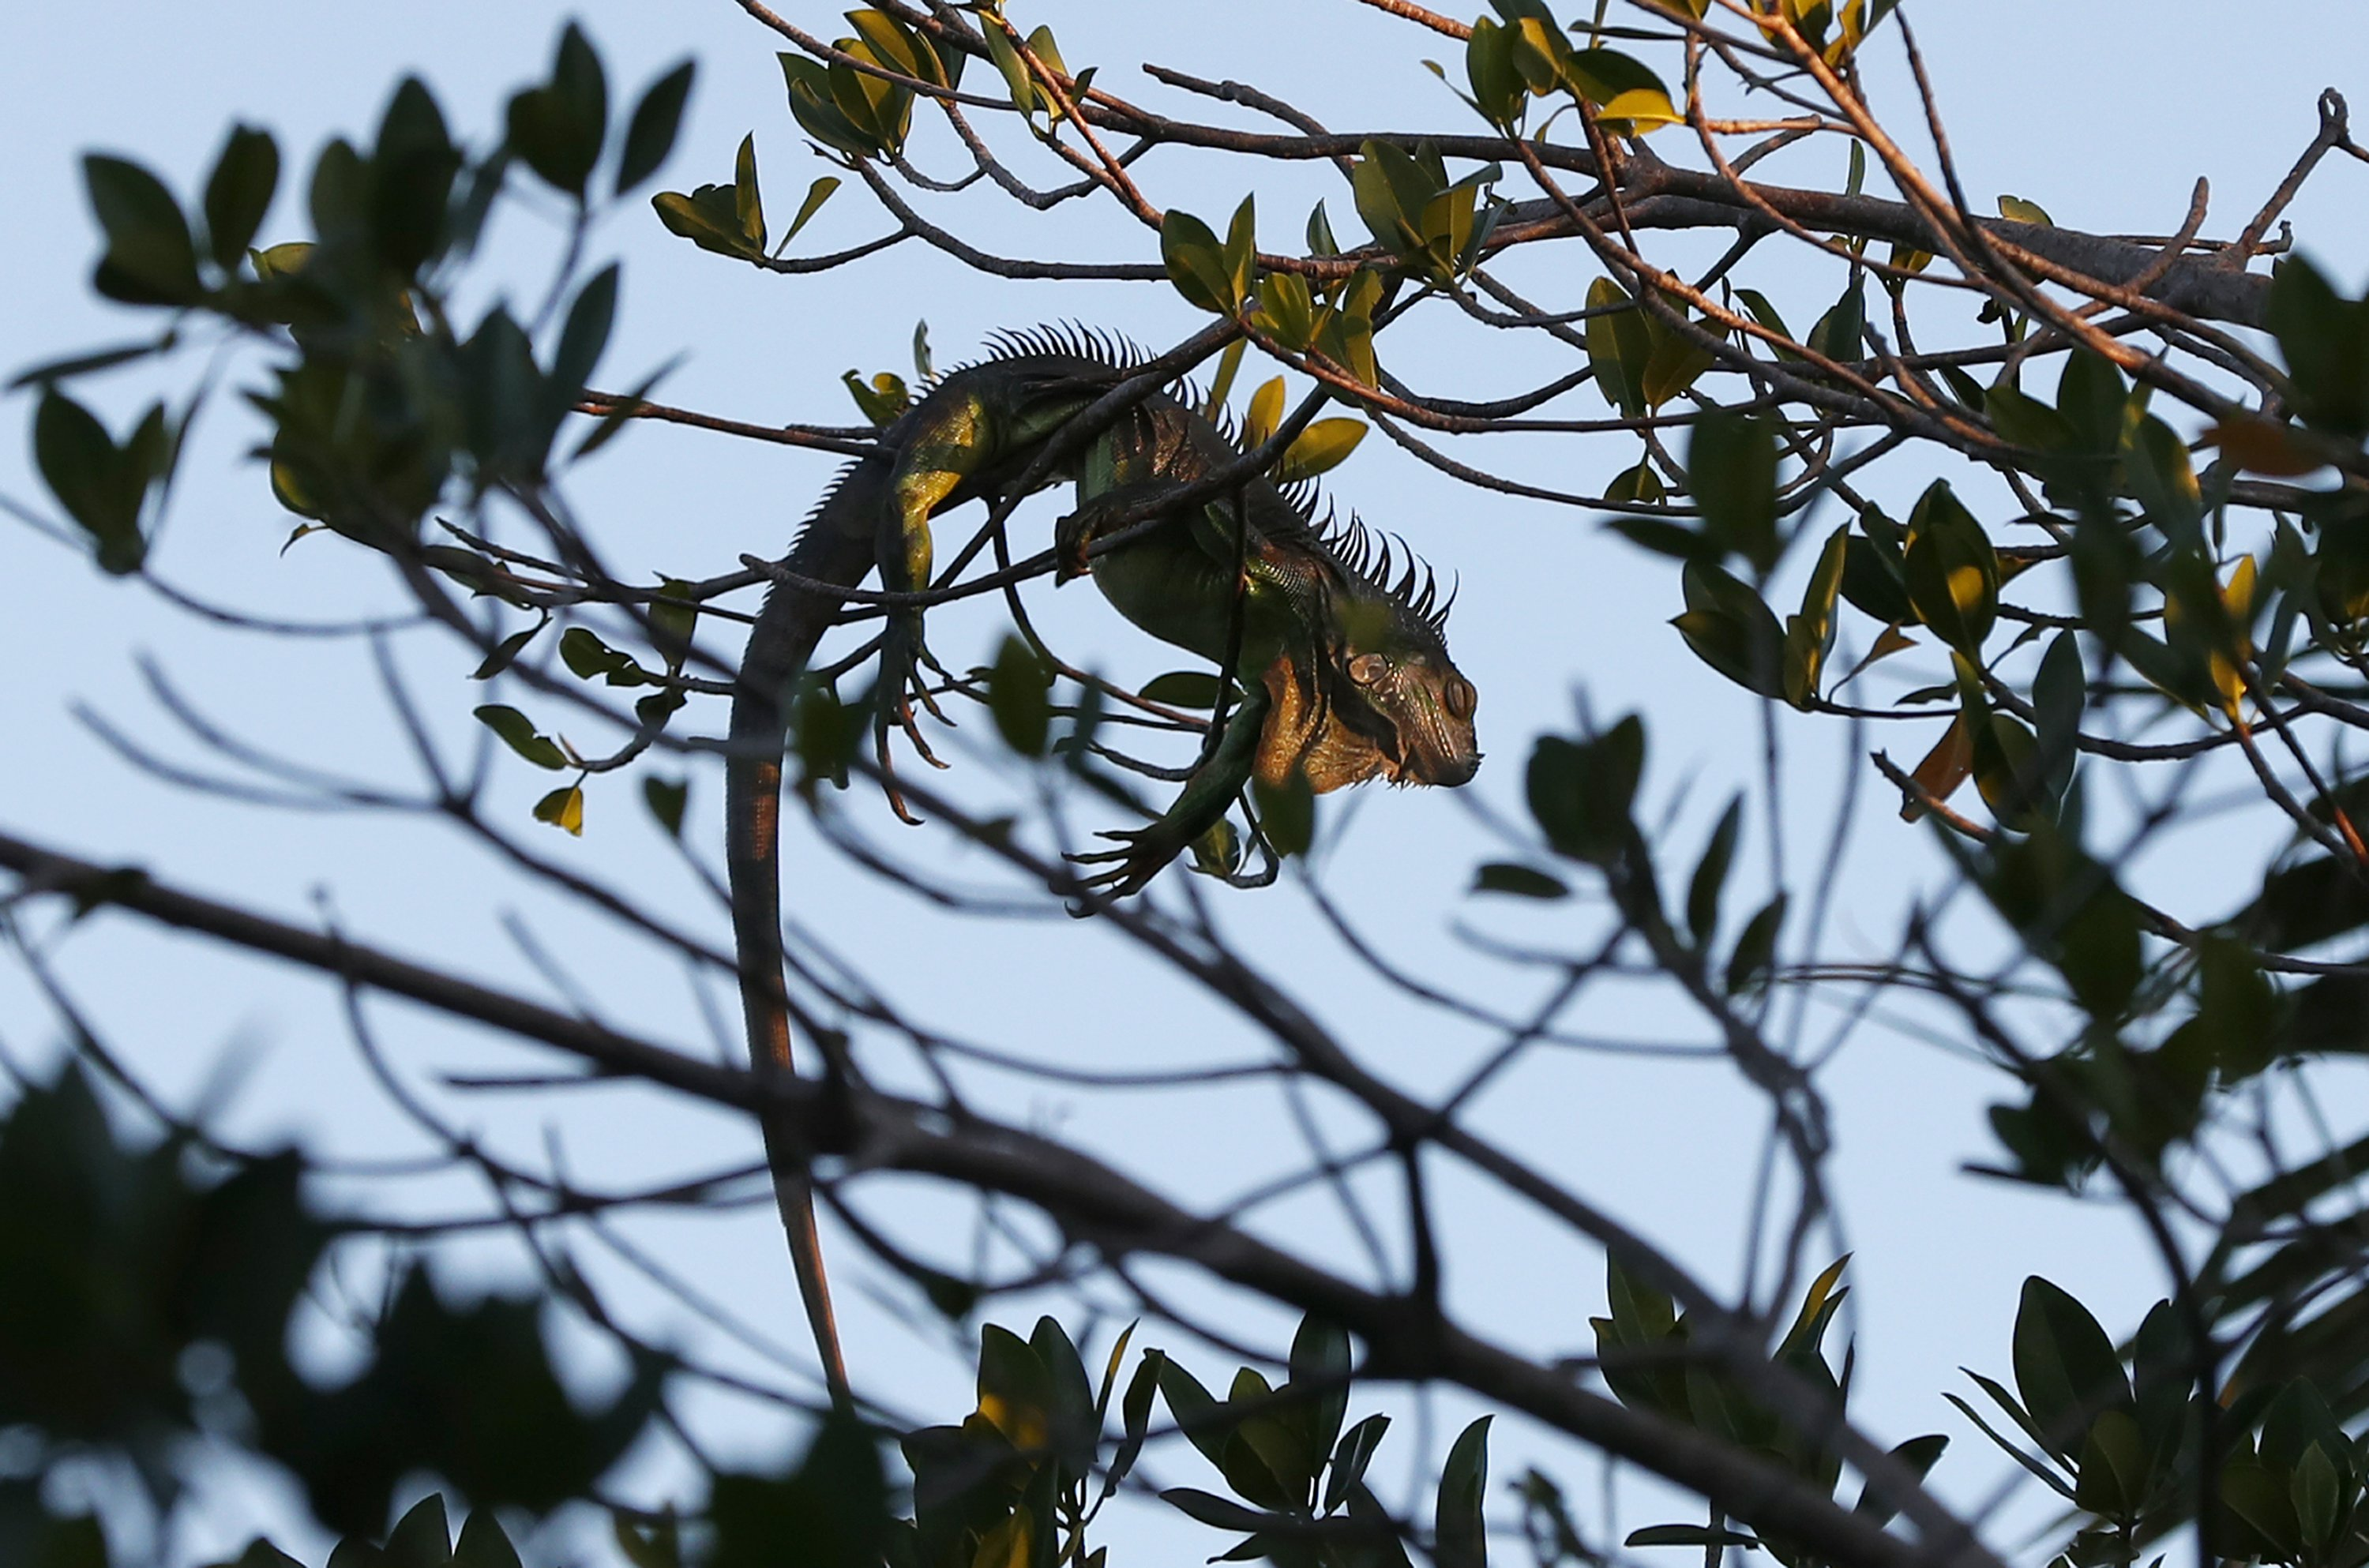 Cold-stunned iguanas falling from Florida trees